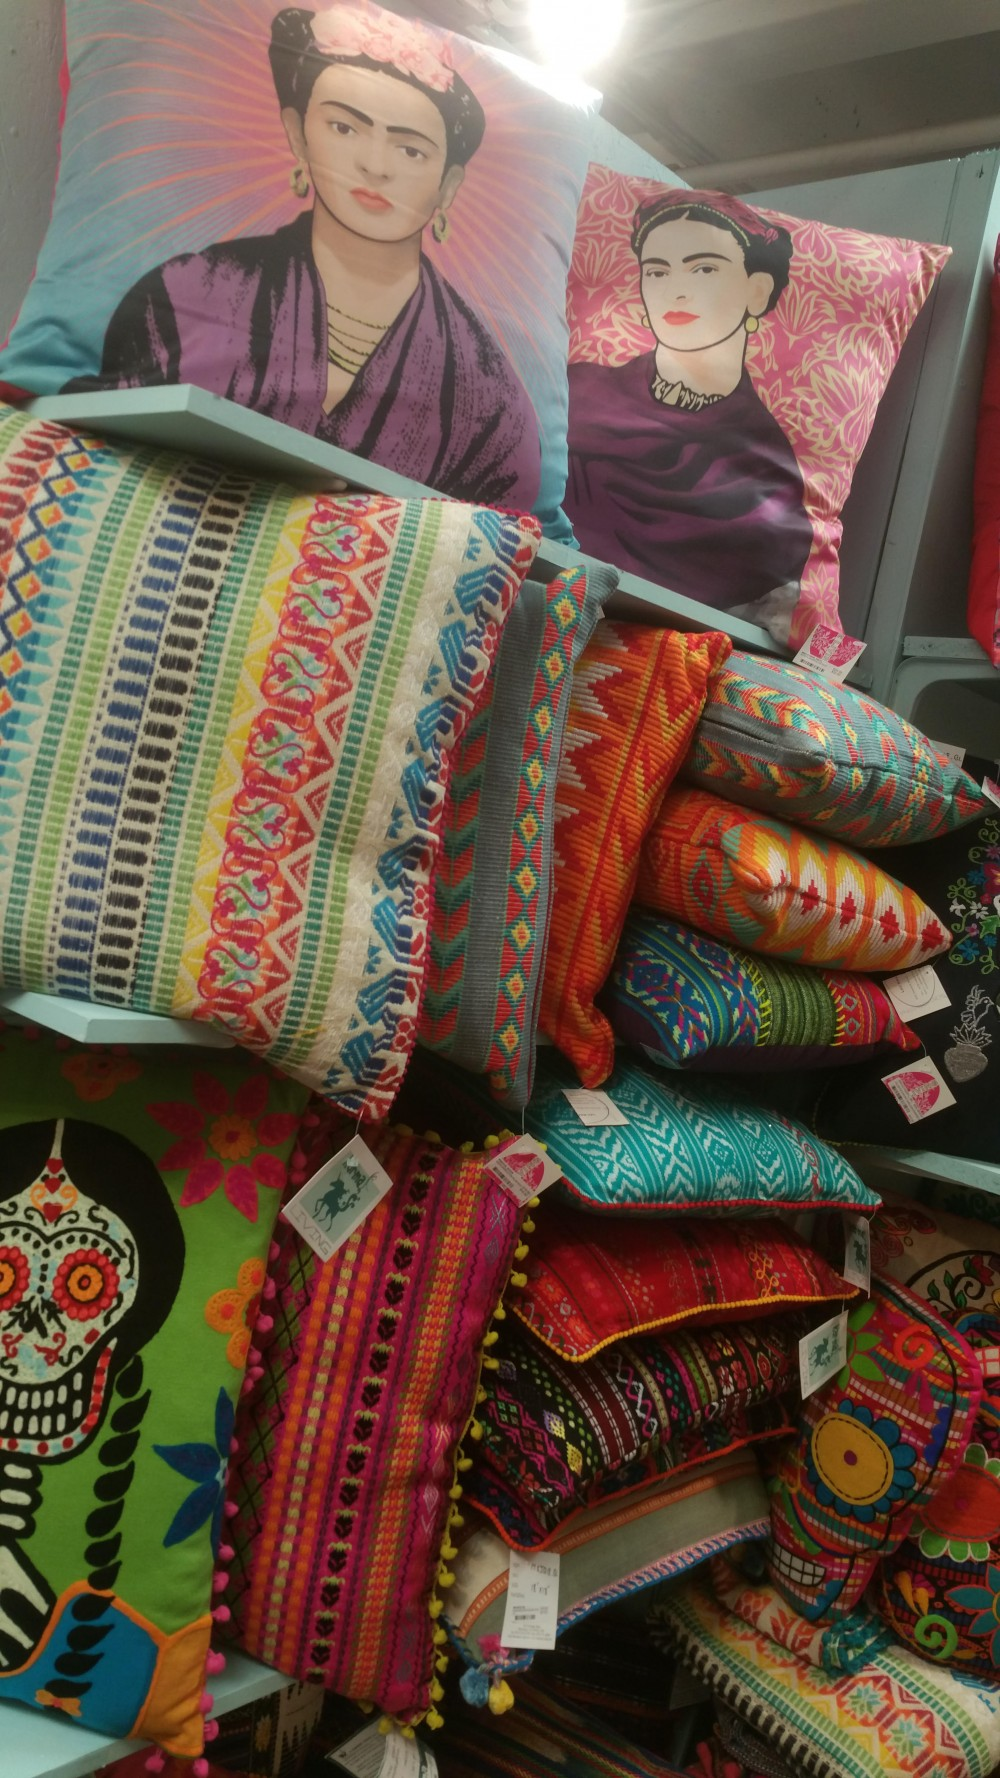 New Colorful Karma Living Design Pillows Ottomans